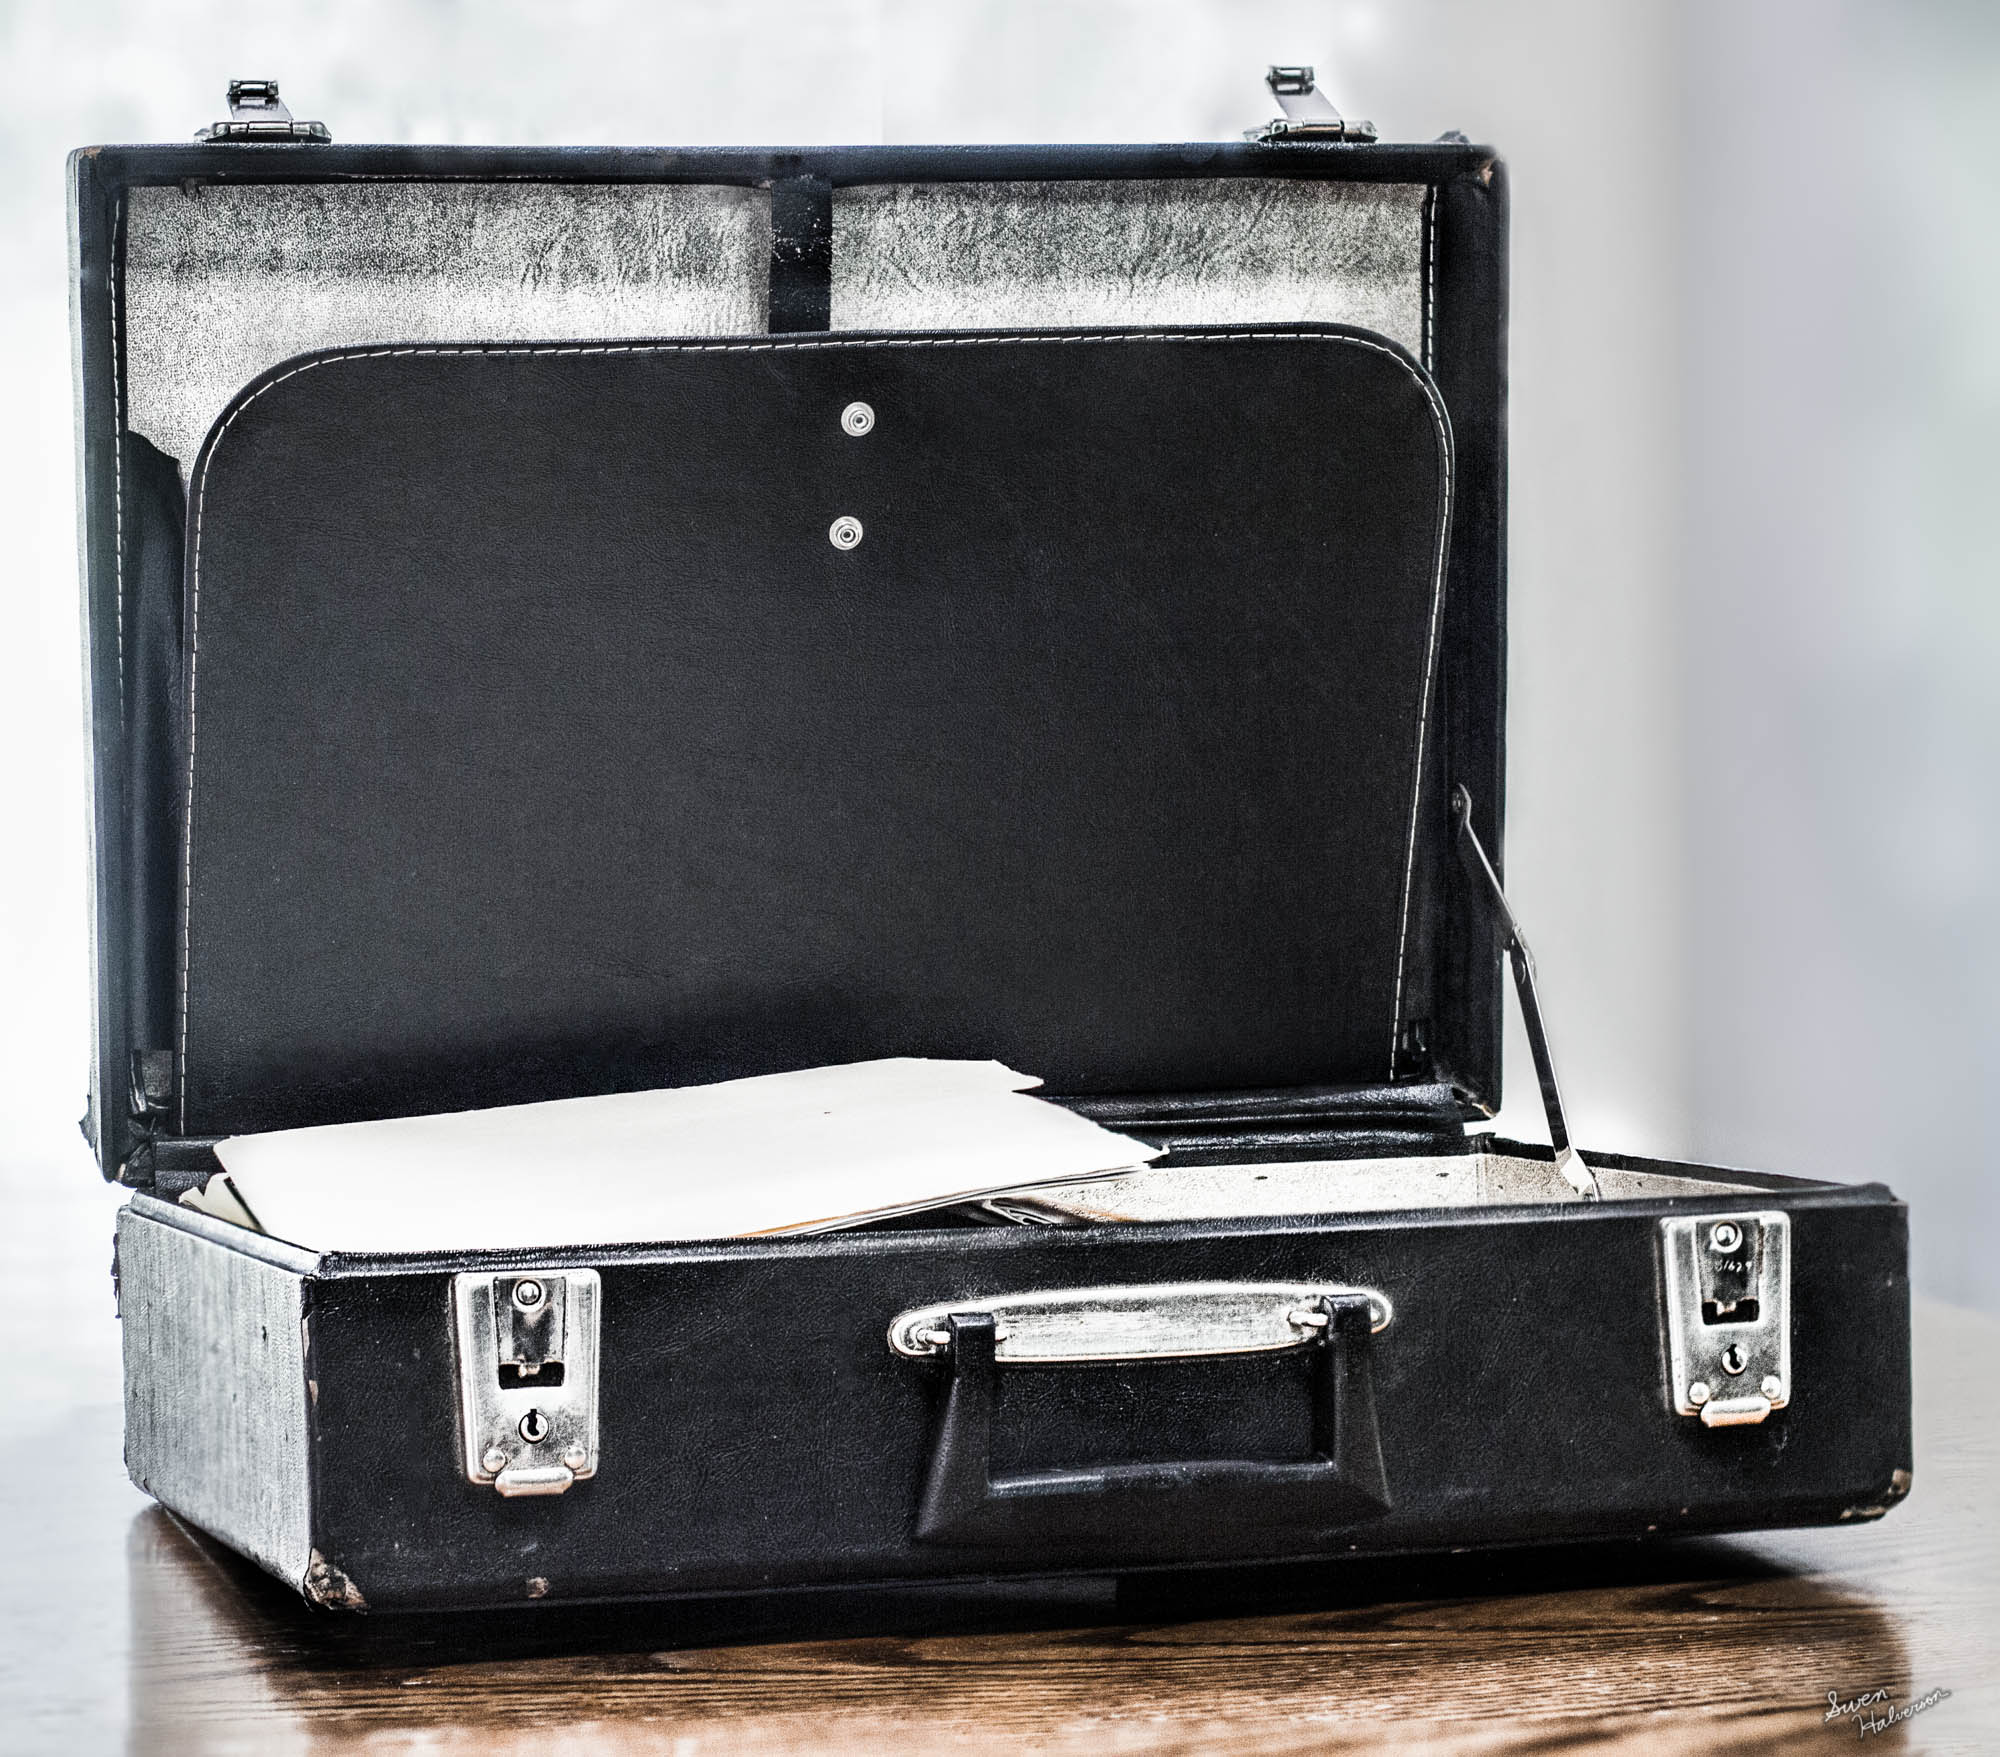 Theme:Briefcase|Title: A Briefcase Opened